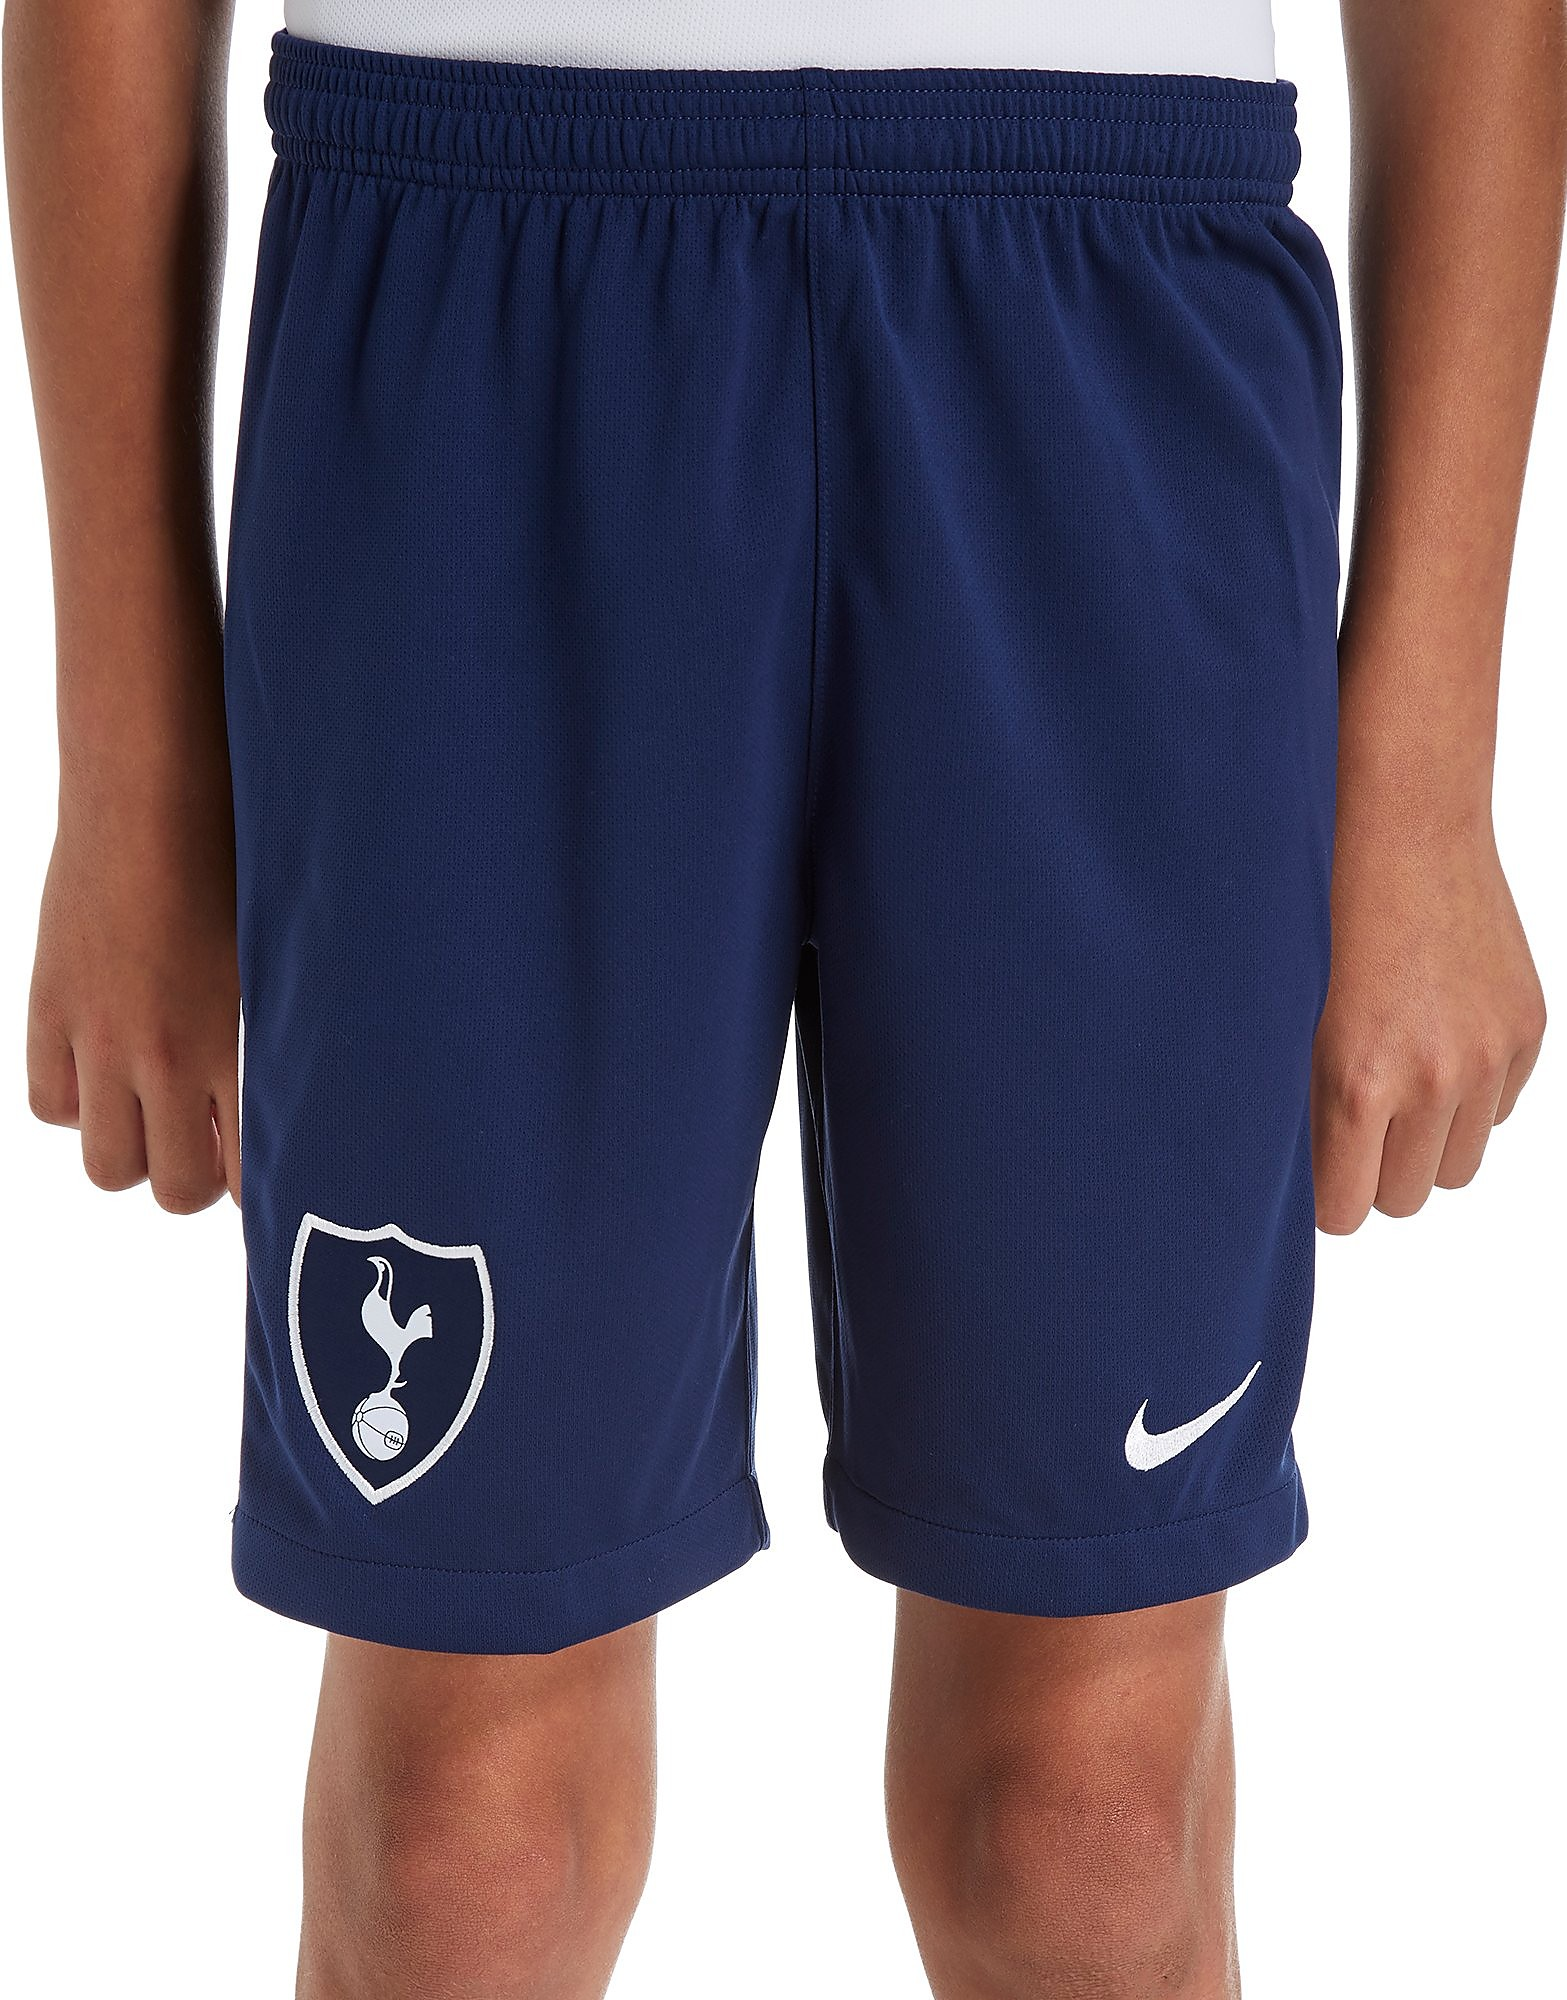 Nike Tottenham Hotspur 2017/18 Home Shorts Junior